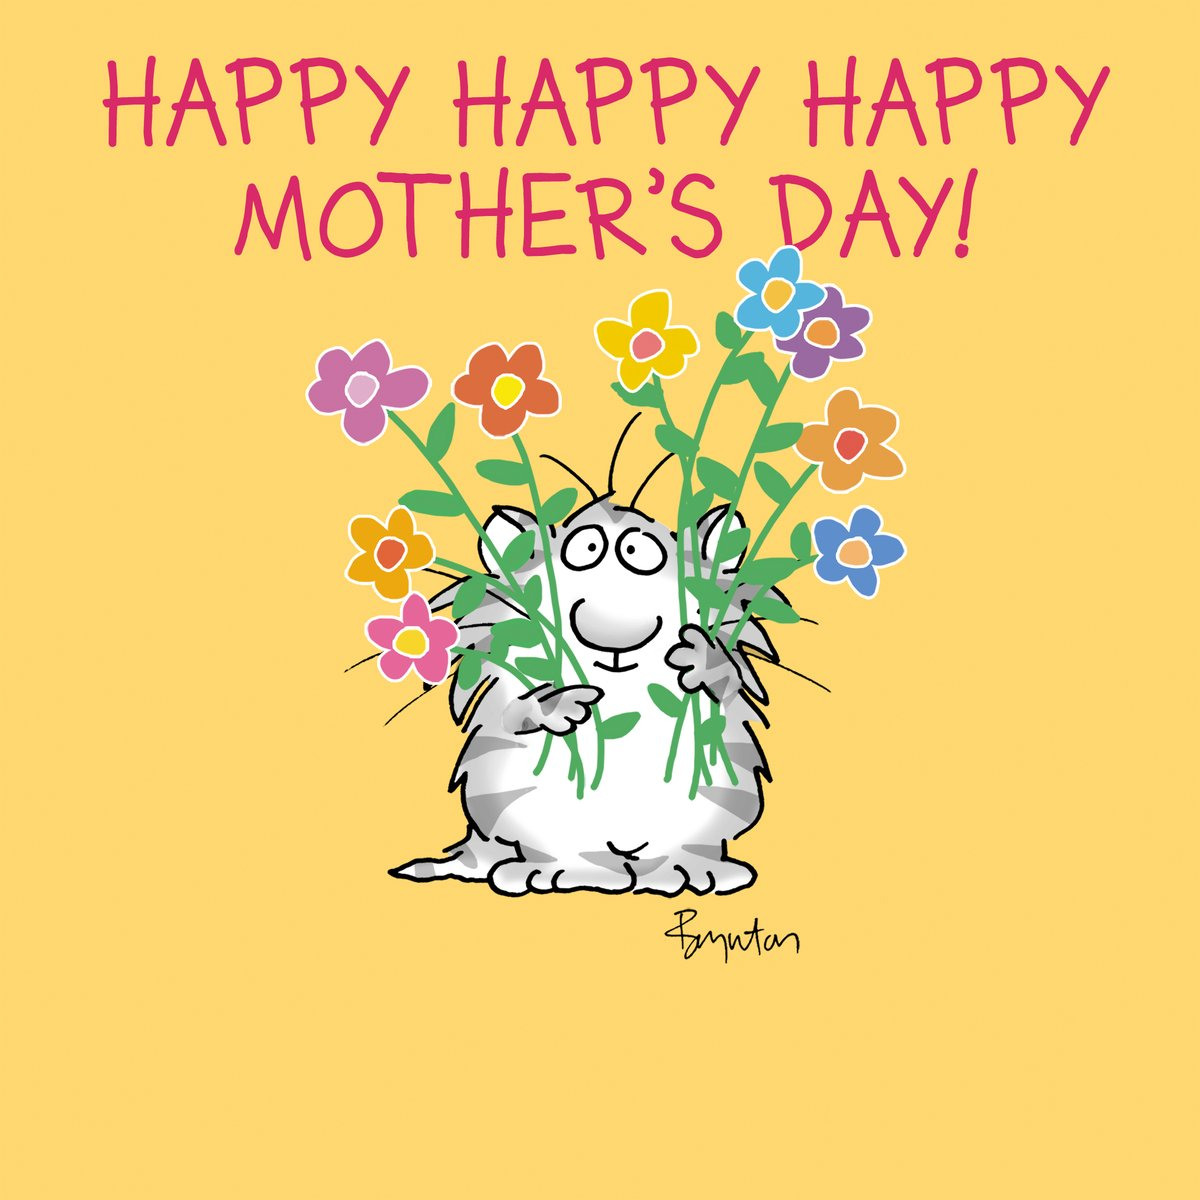 Wishing a peaceful Happy Mother's Day to all Moms, and also to all who fill a Mom role.